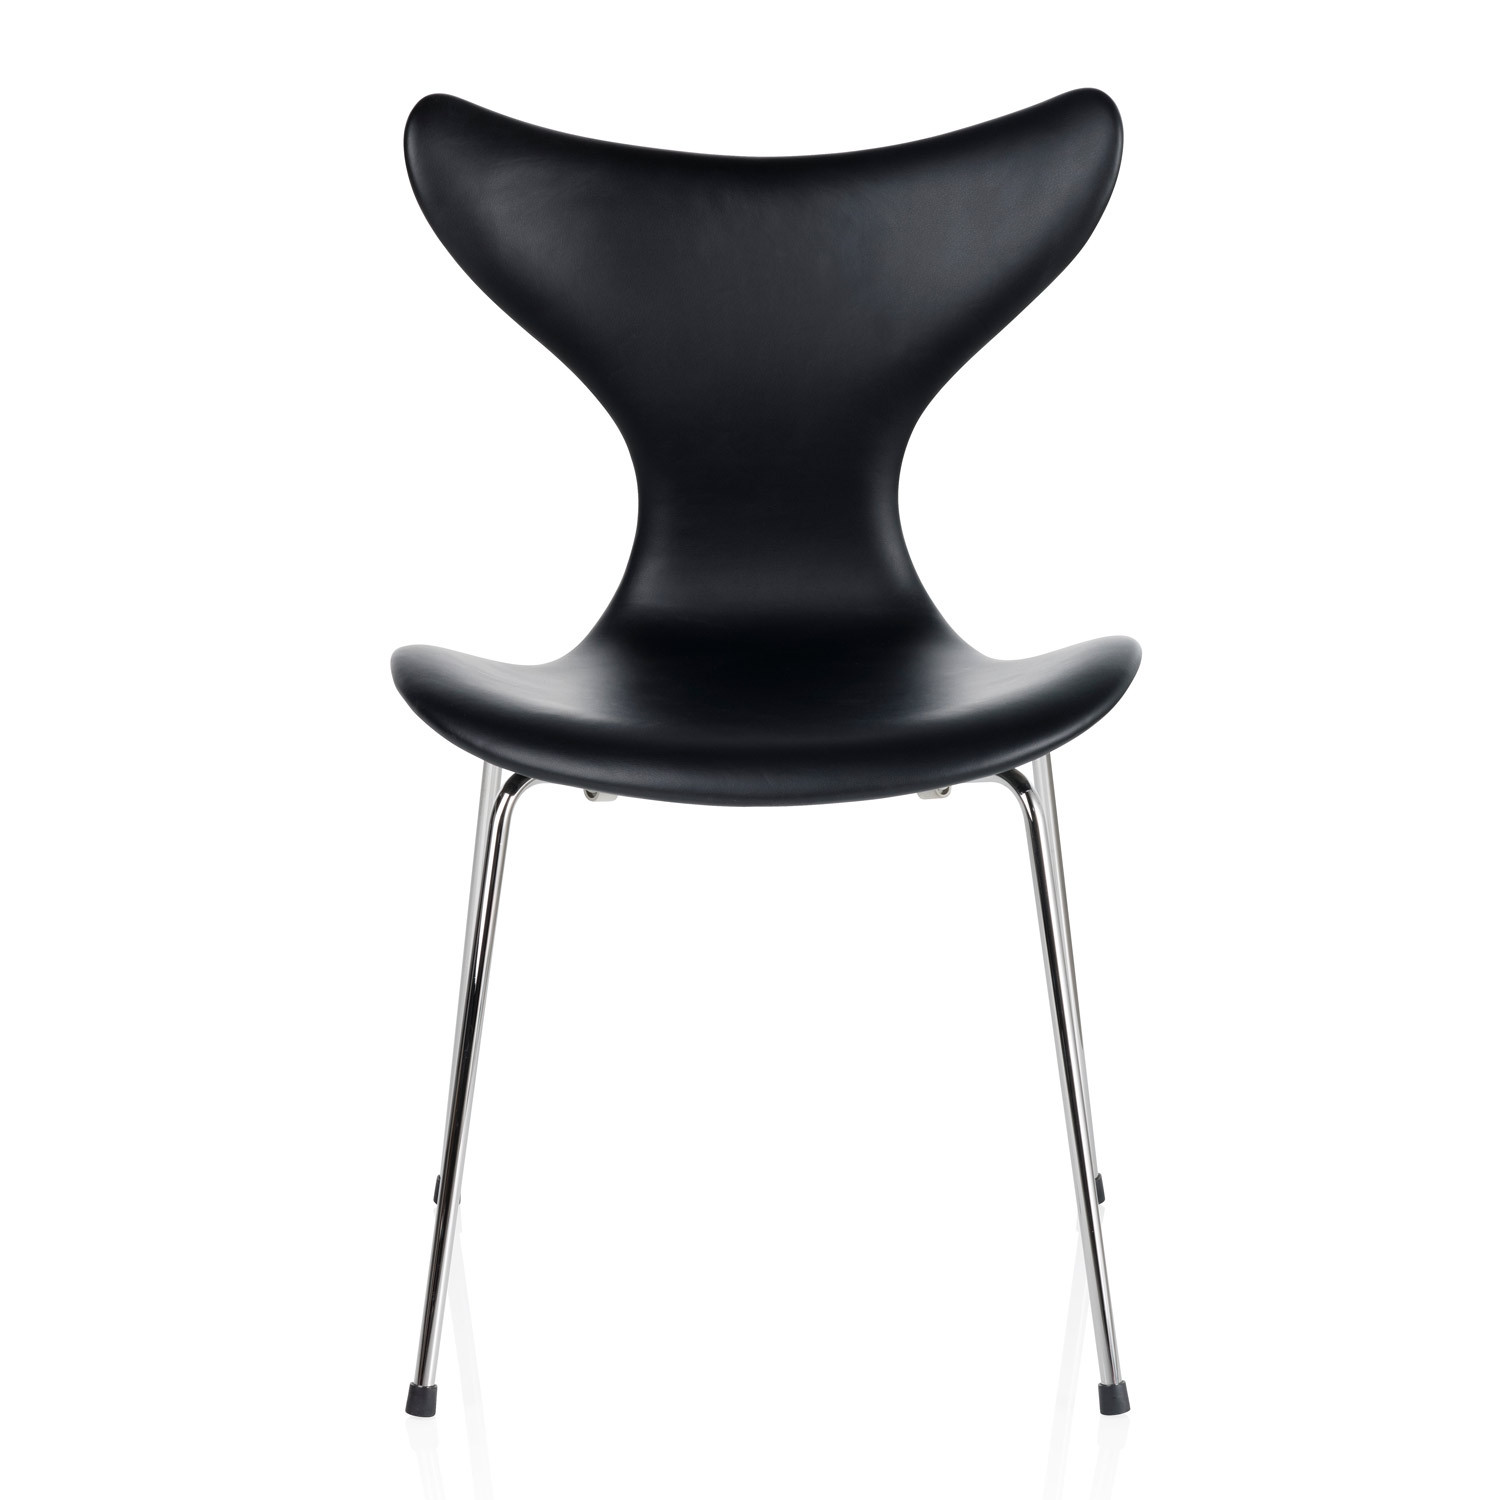 Lily™ Chair